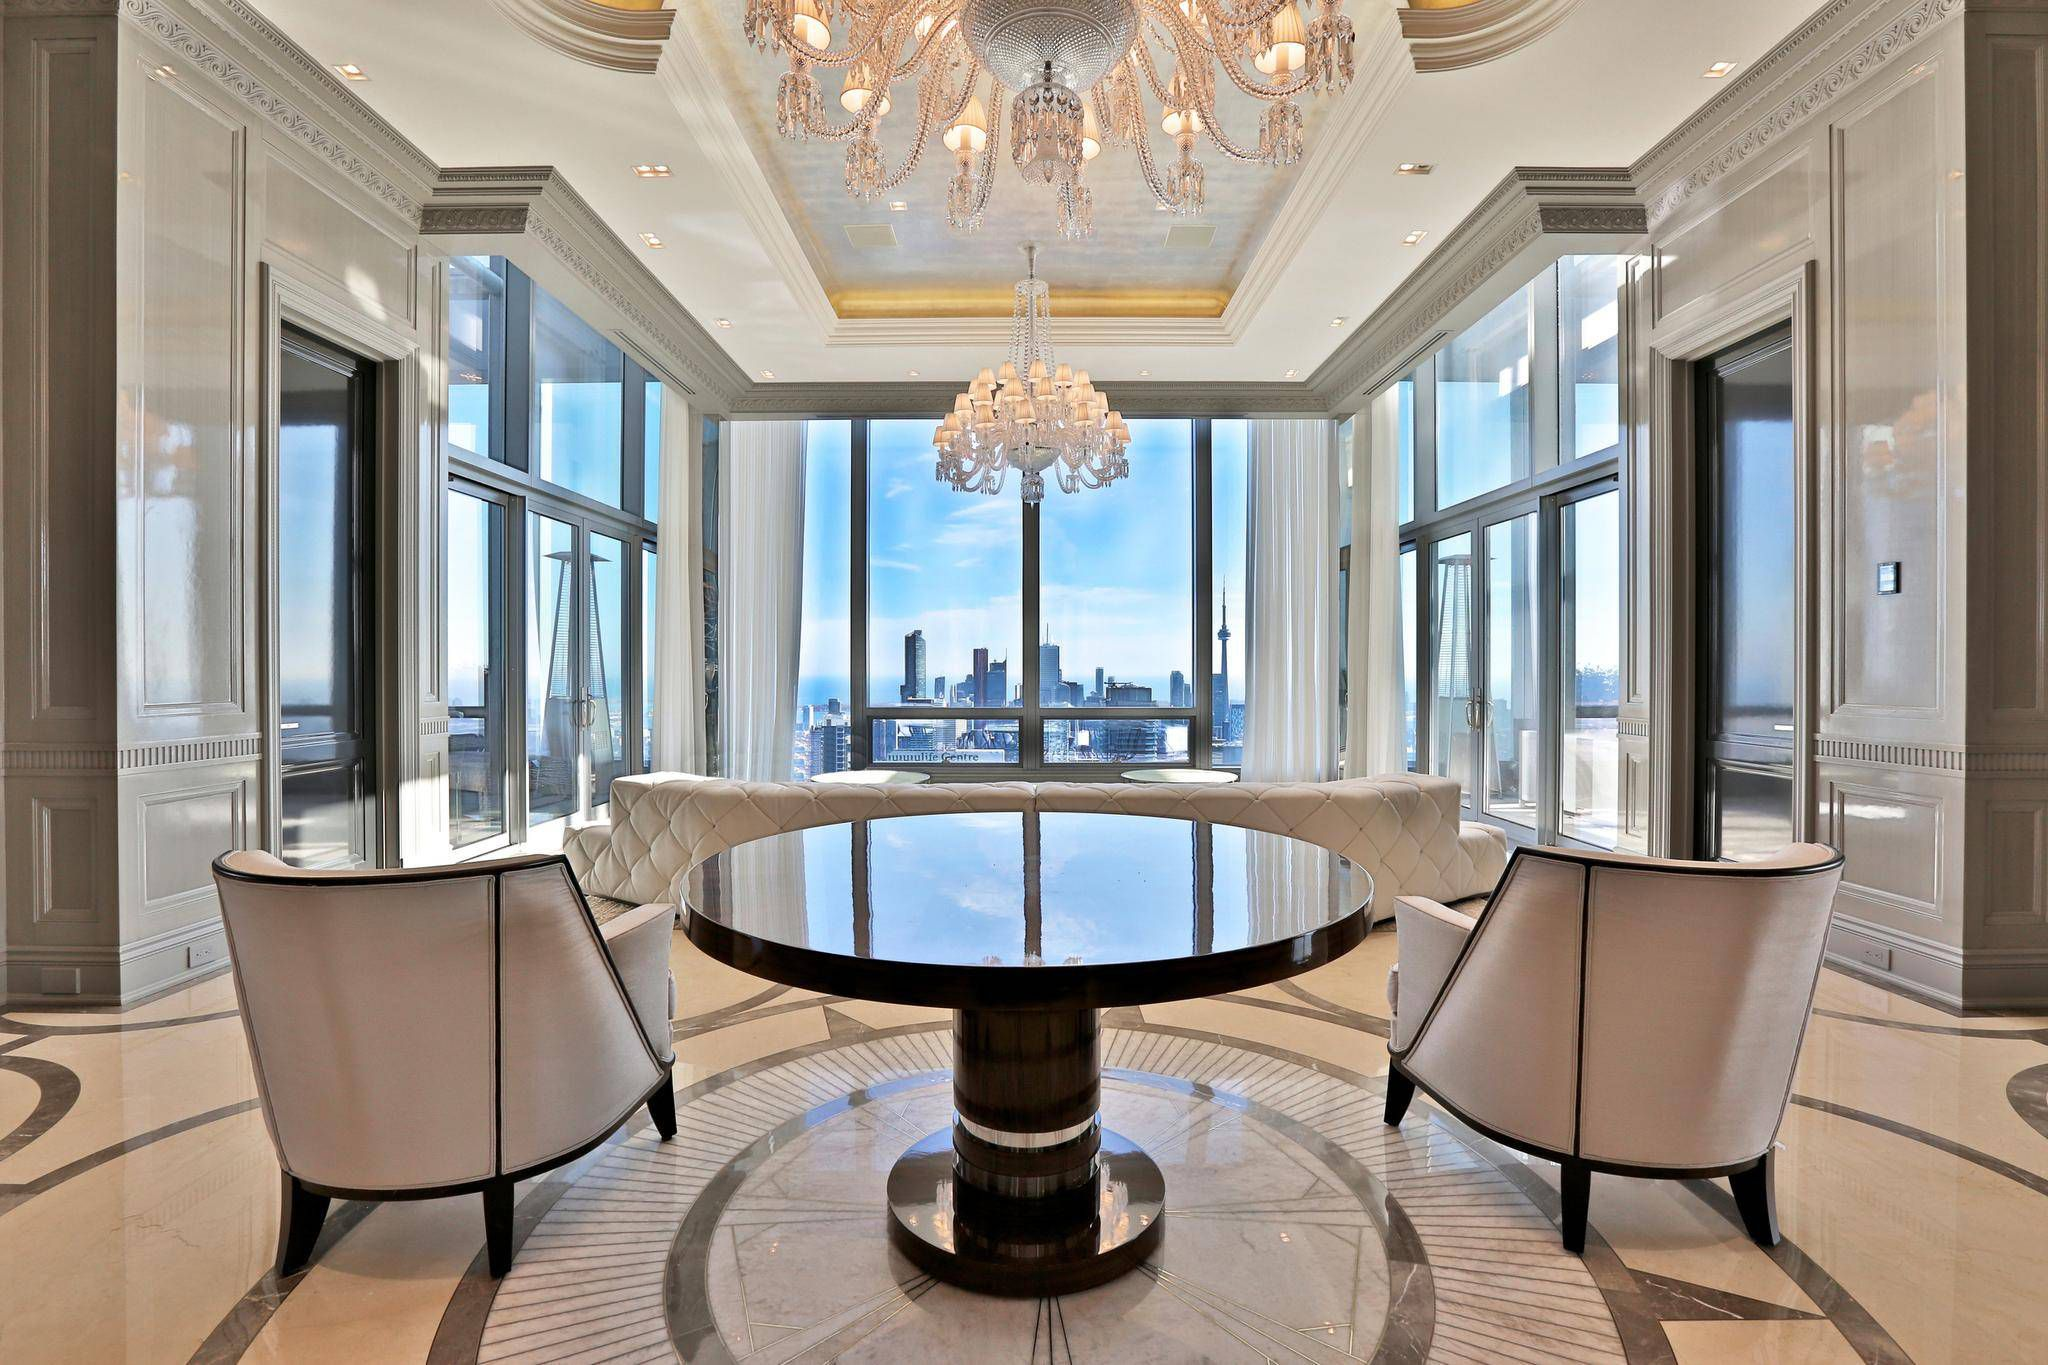 Home of the Week: A $36-million Yorkville penthouse - The Globe and Mail